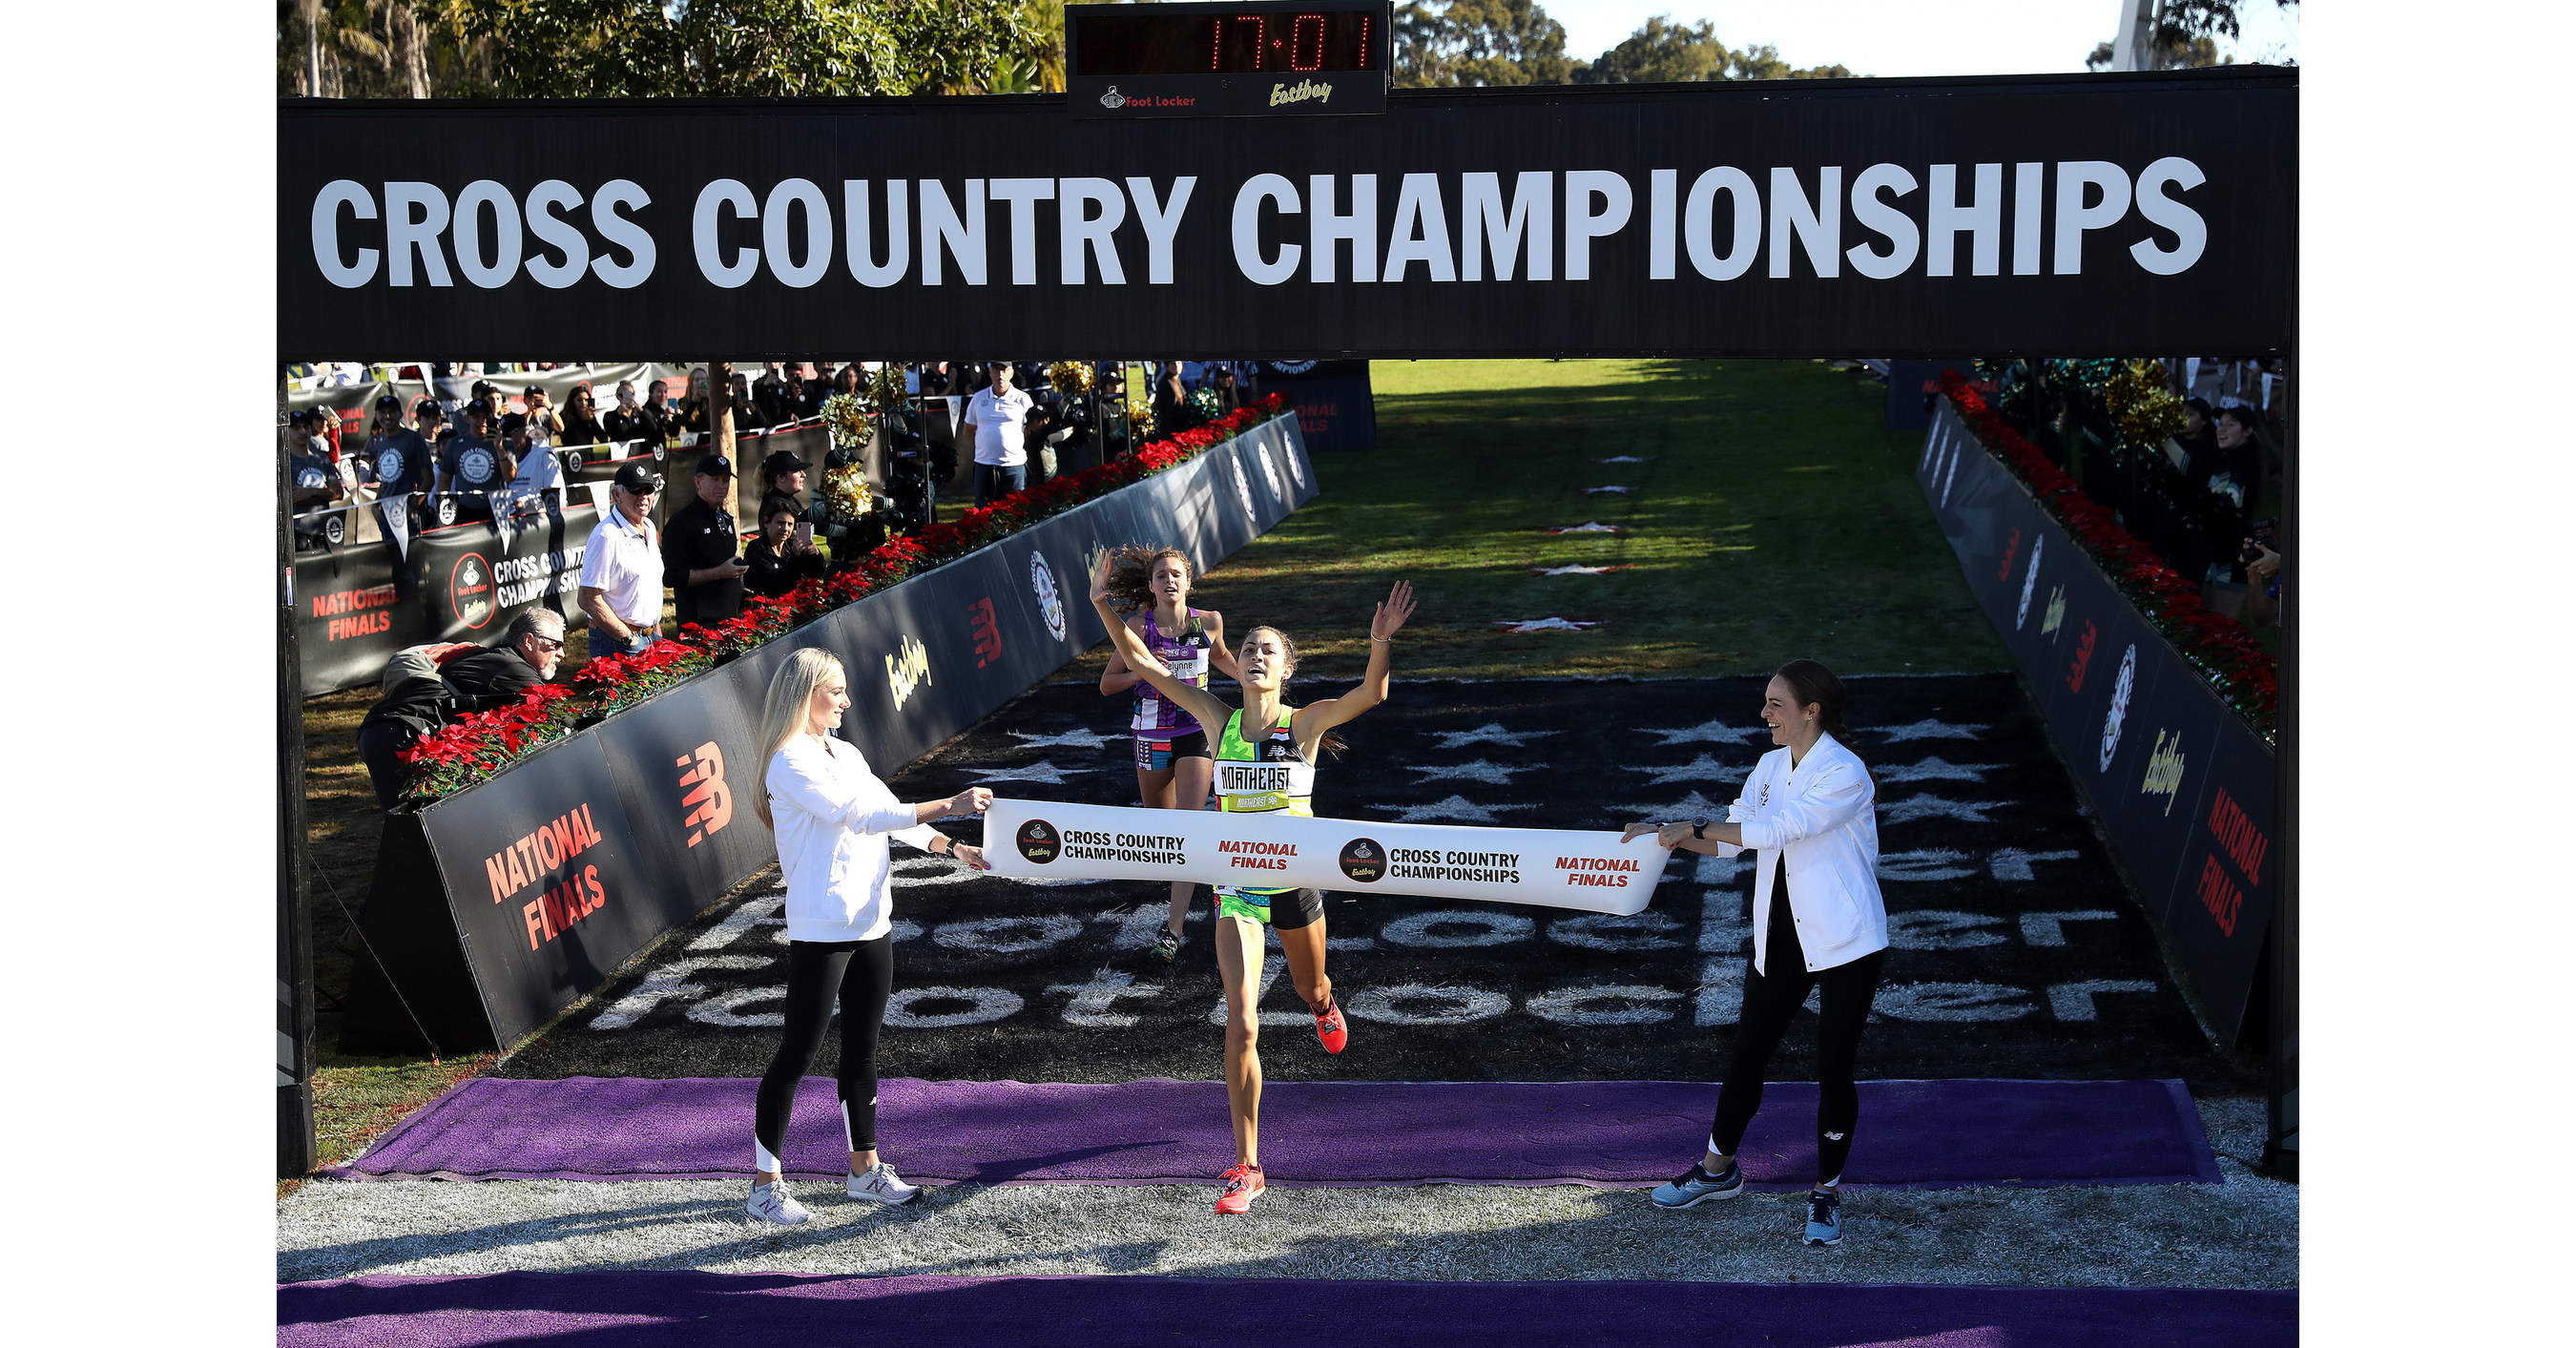 0c83d6181 Sydney Masciarelli and Cole Hocker Capture First Place Titles at the 40th  Annual Foot Locker Cross Country Championships National Finals Presented by  ...